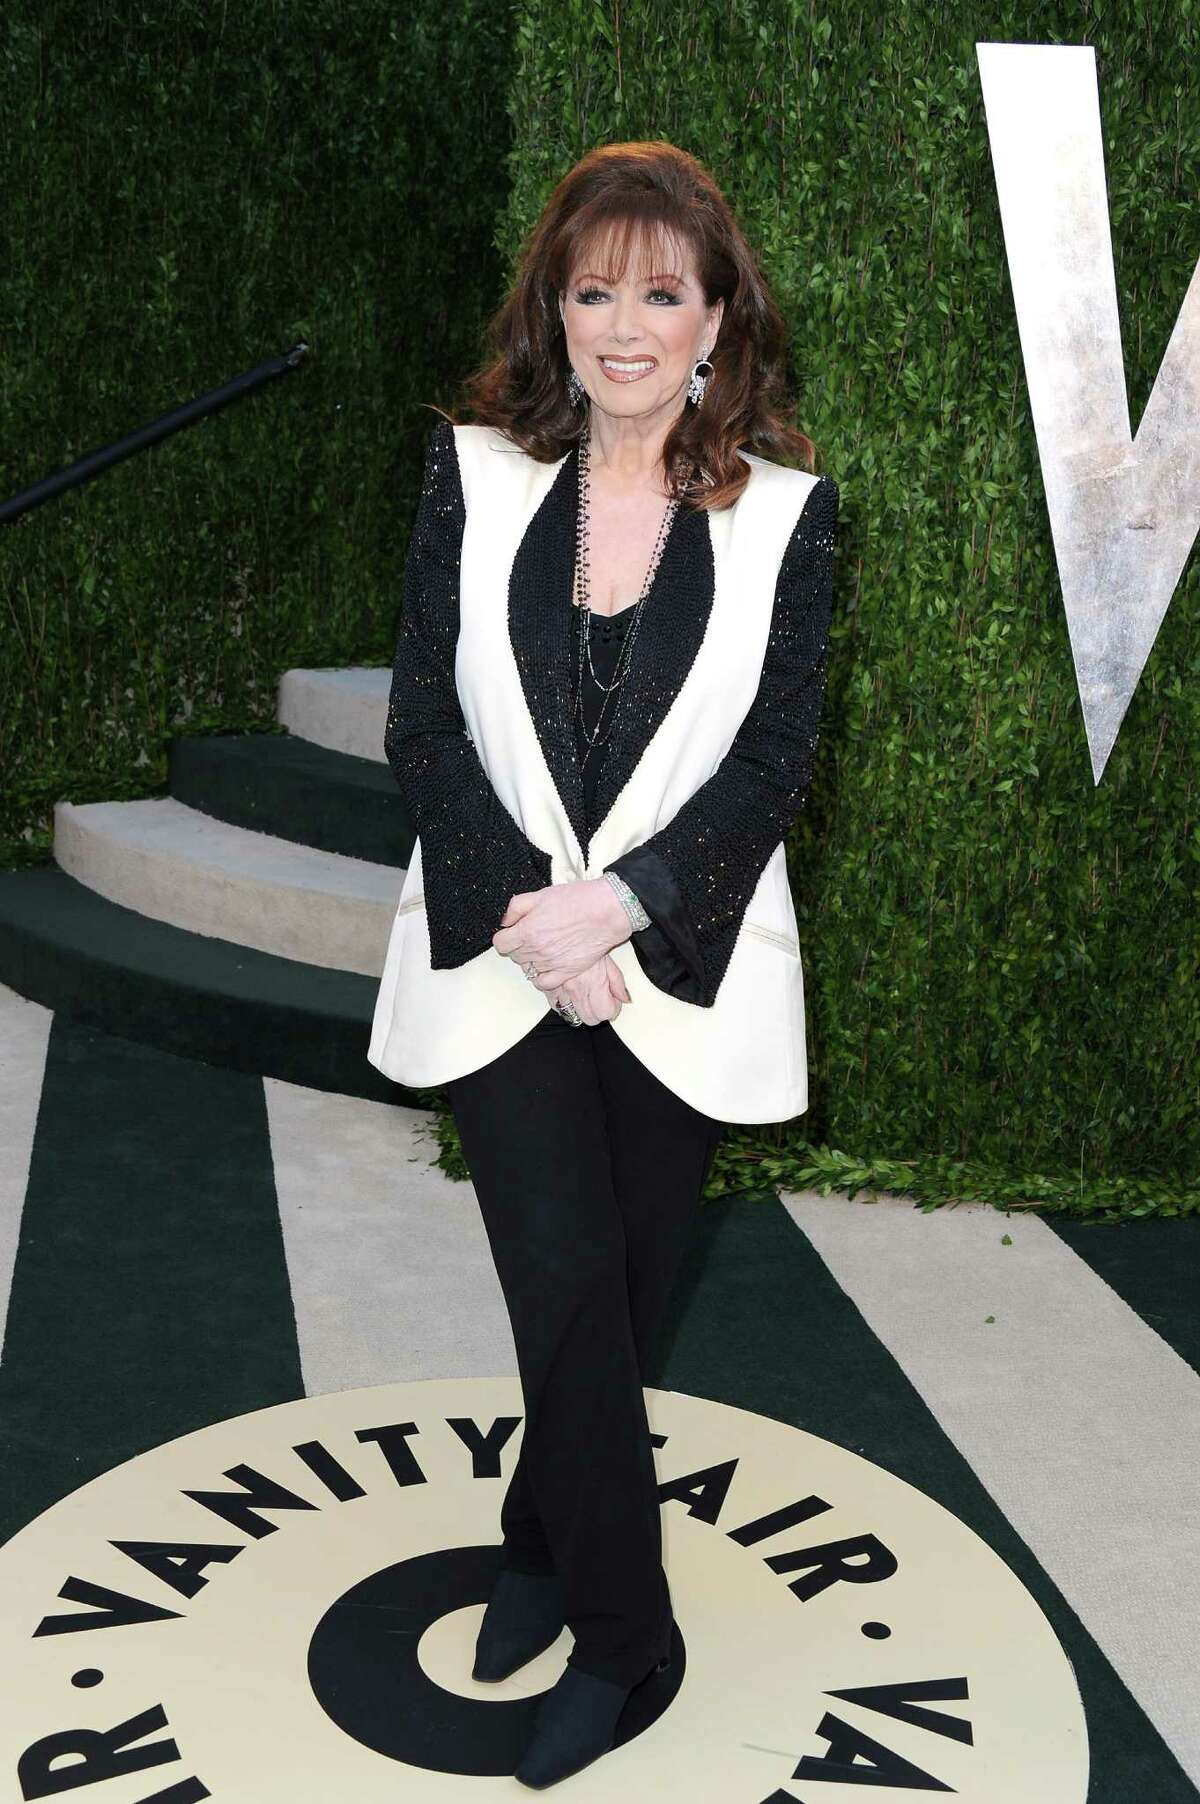 Novelist Jackie Collins dies after a battle with breast cancer. She was 77 years old.